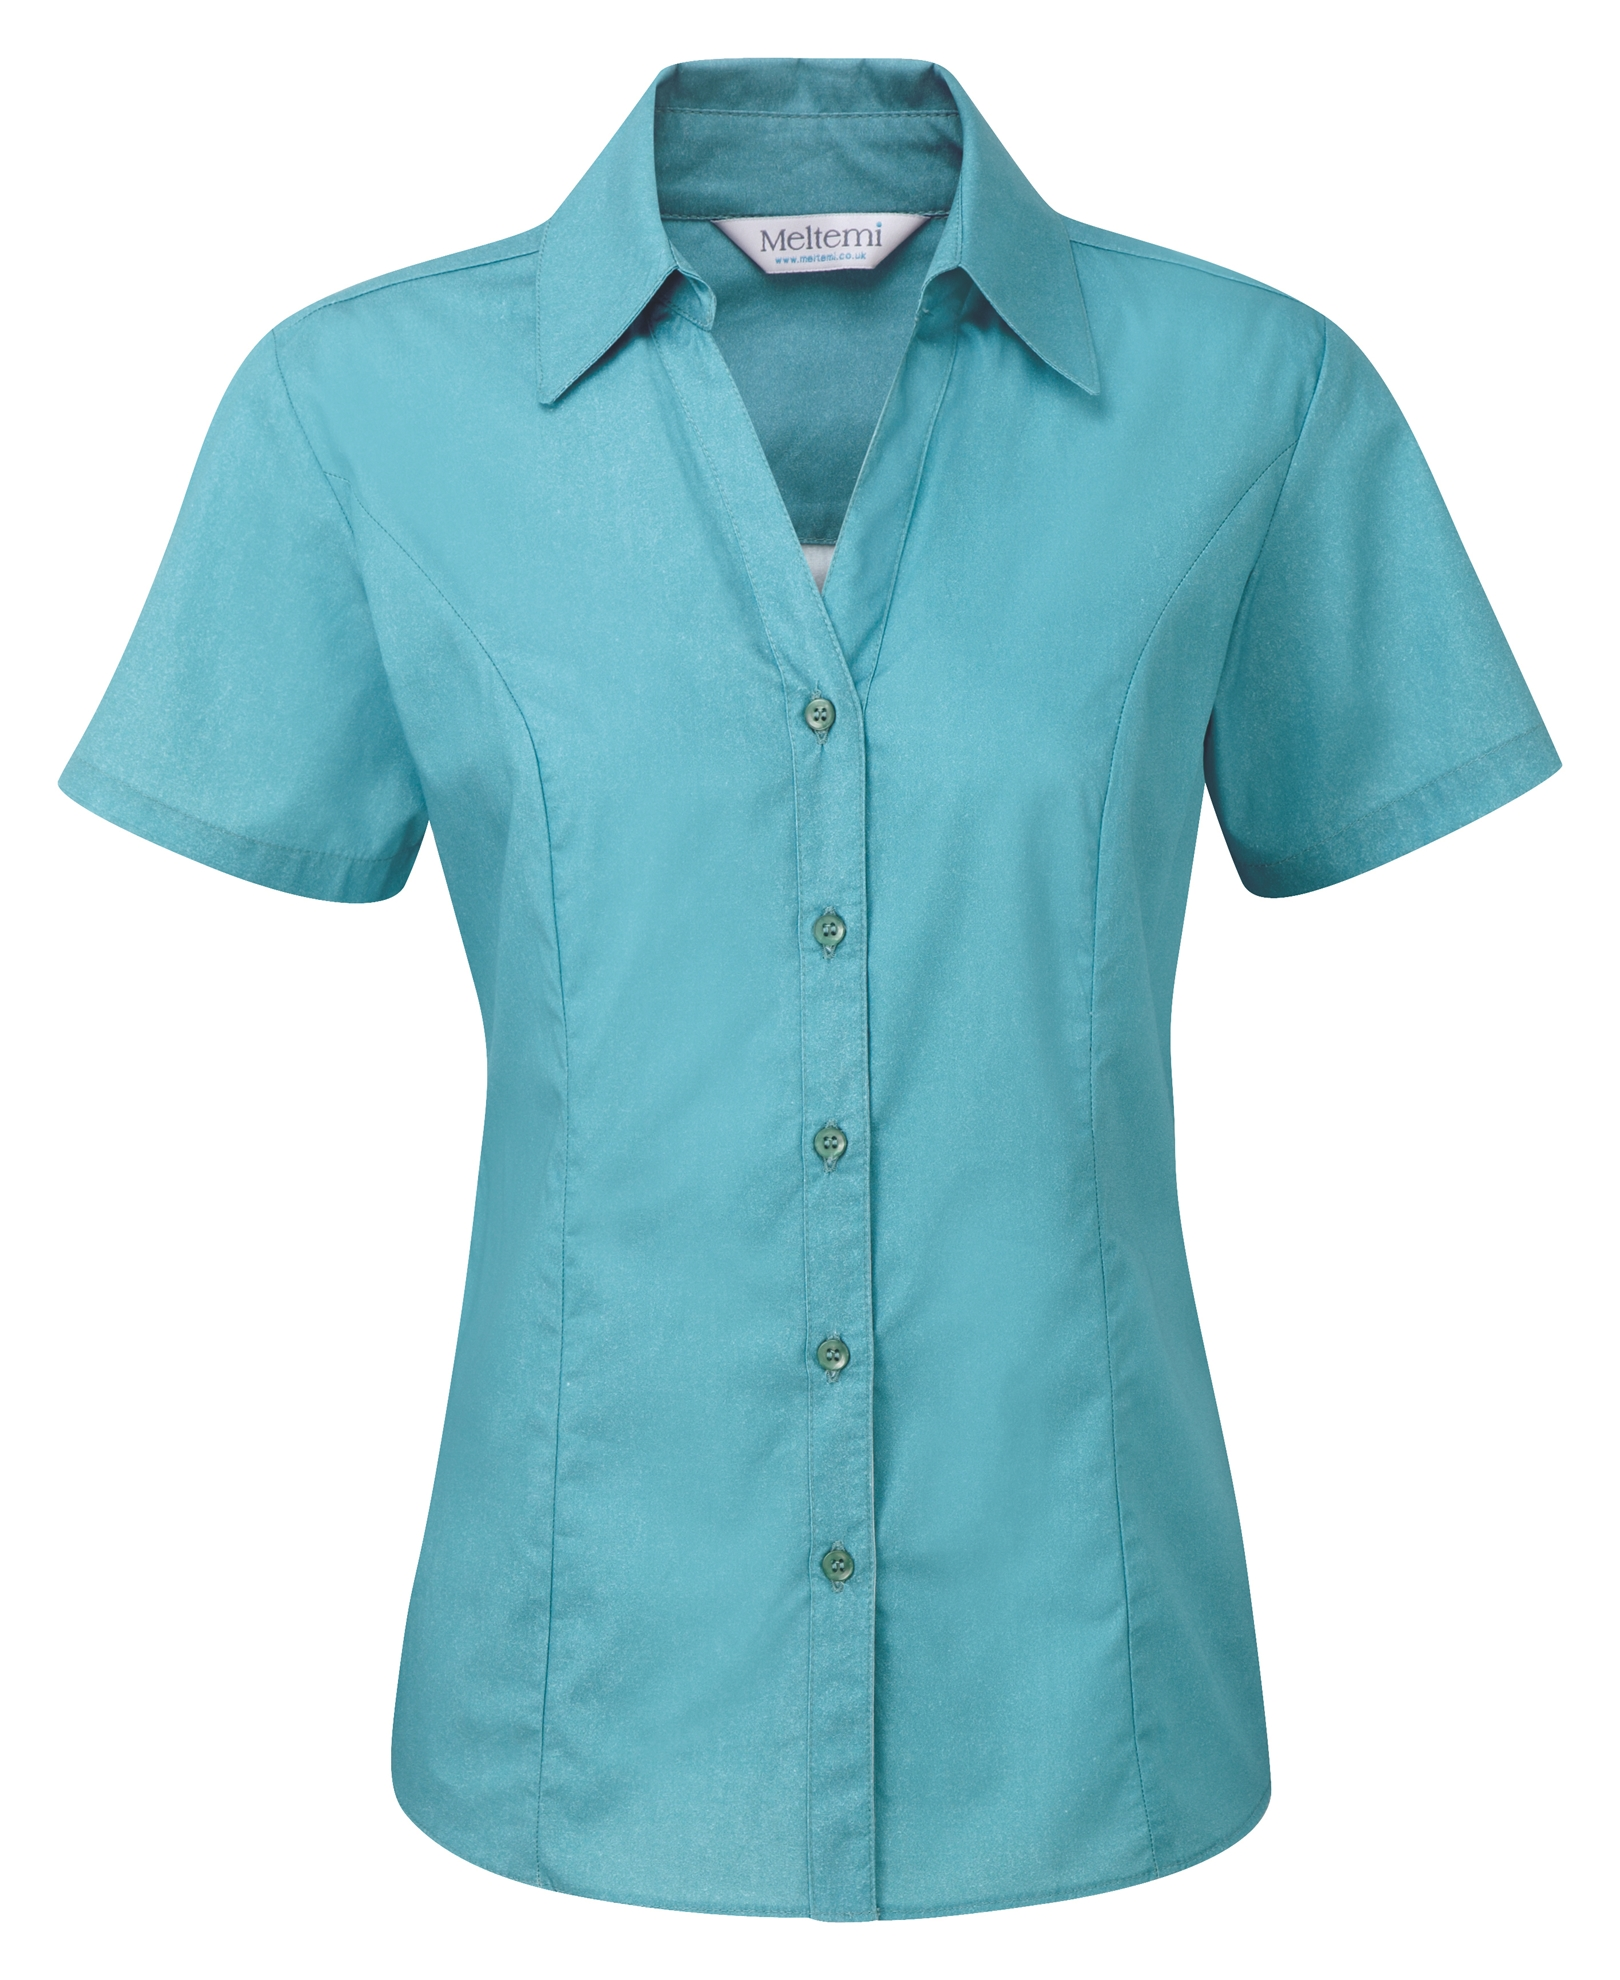 Picture of Semi-Fitted Polycotton Blouse - Plain Teal